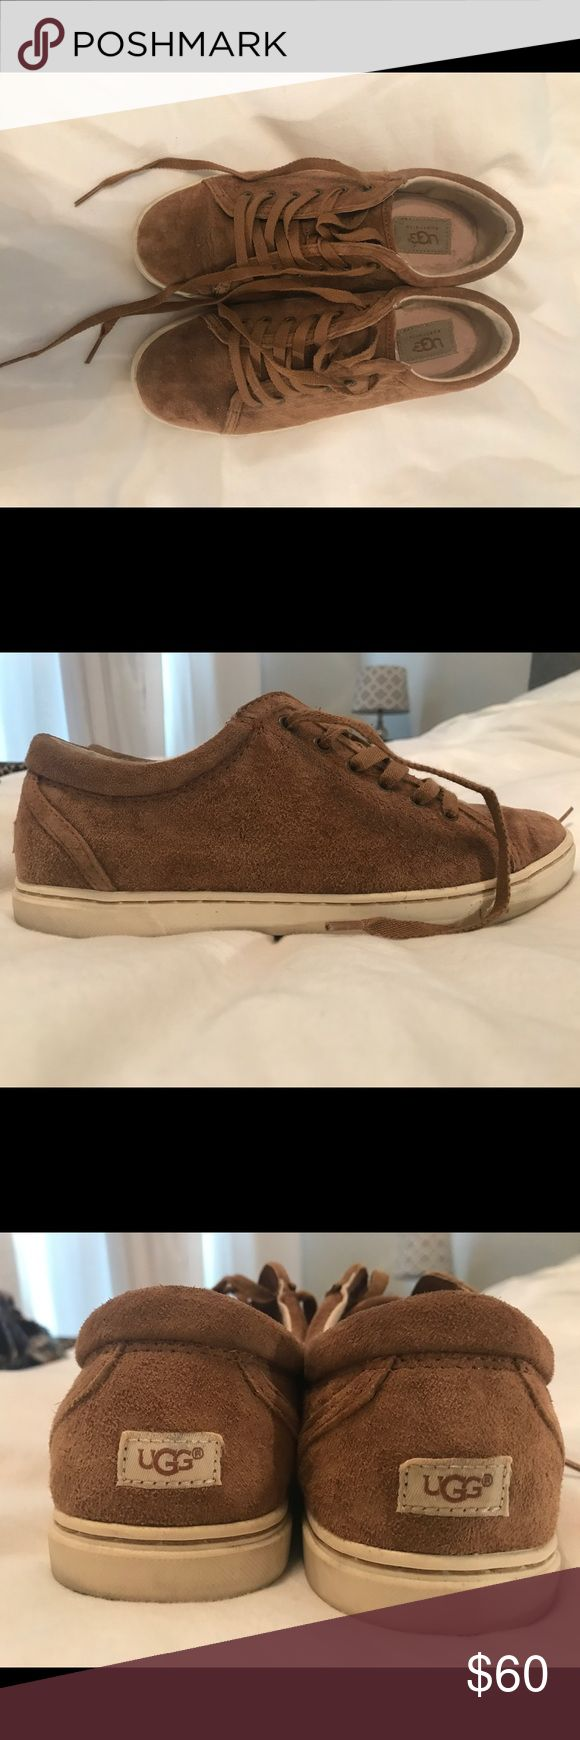 Ugg sneakers Ugg sneakers Camel color Good condition Shoes Sneakers